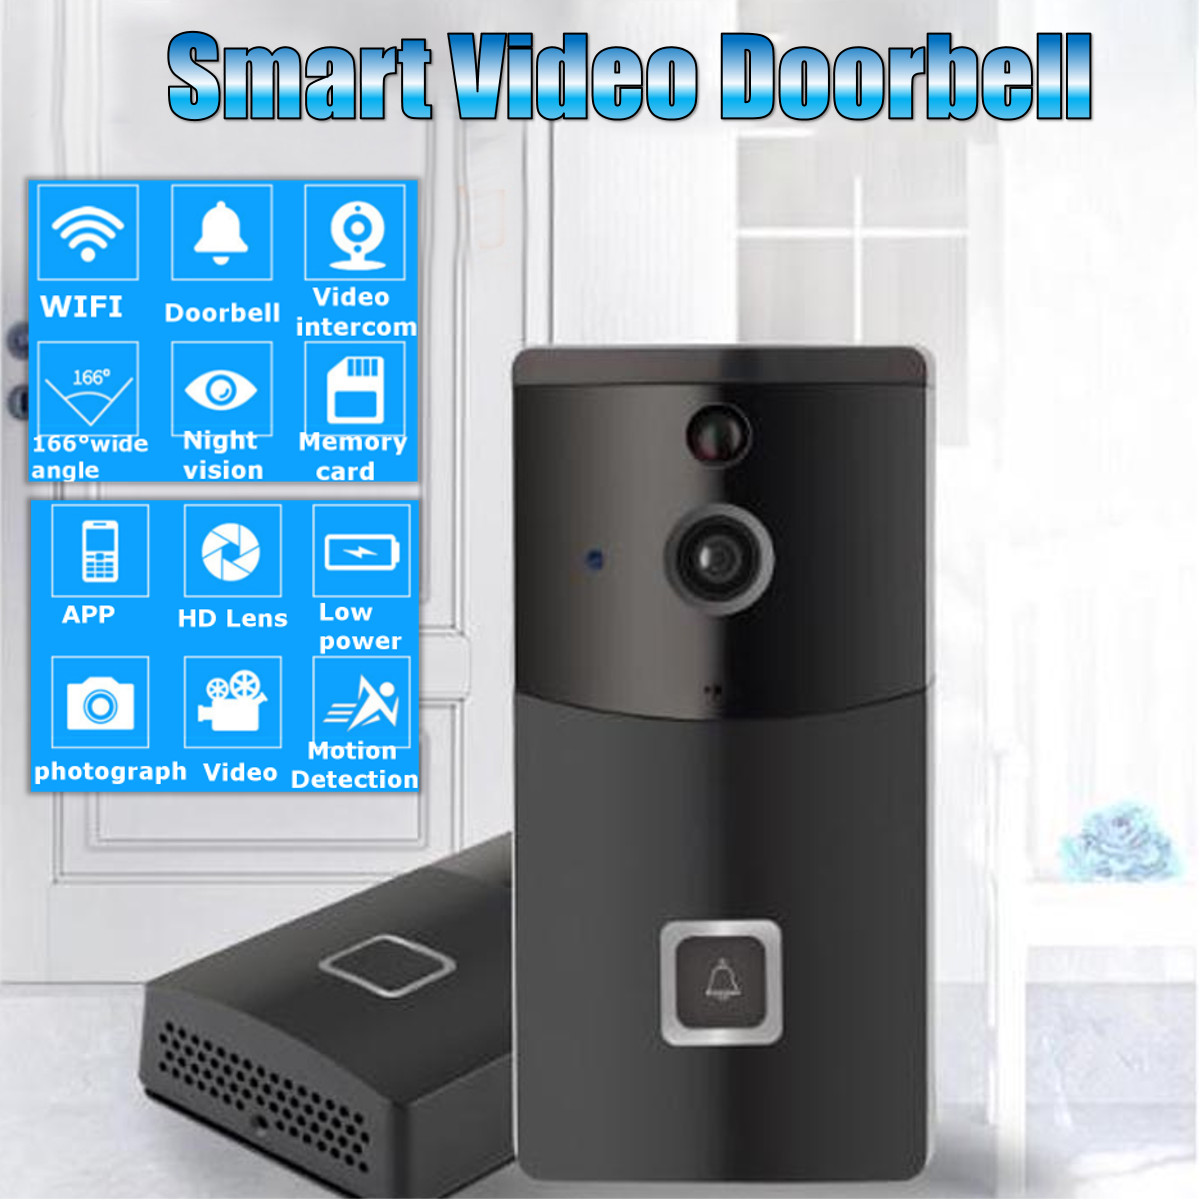 WIFI Doorbell B30 IP65 Waterproof Smart Video Door Chime 720P Wireless Intercom FIR Alarm IR Night Vision IP Camera